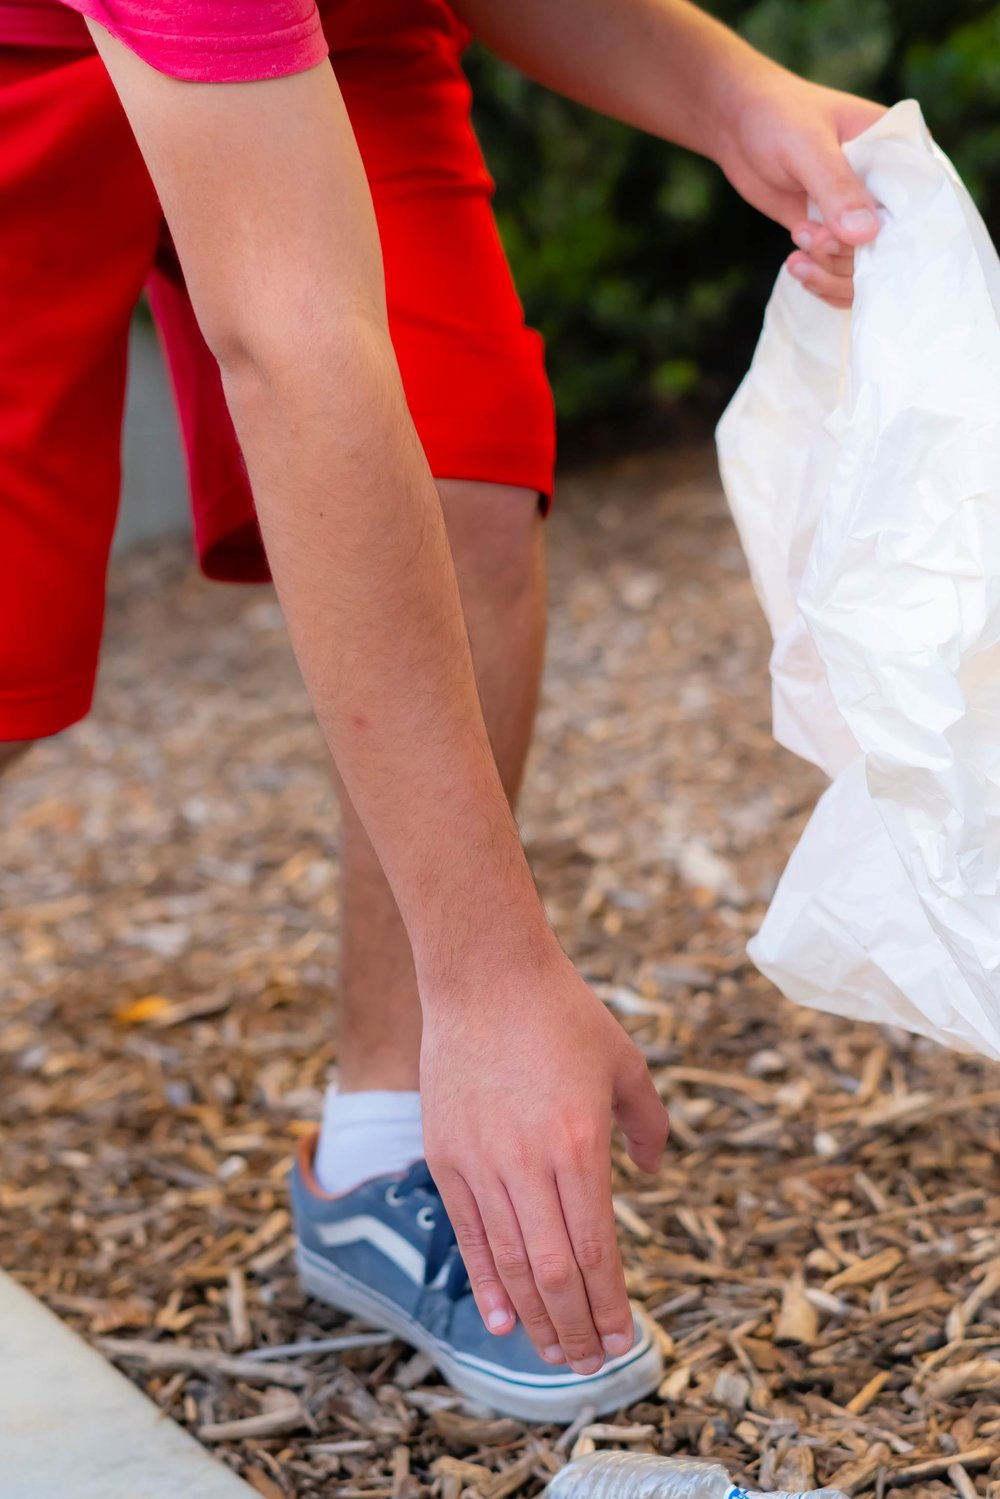 Leaving litter on the ground and walking by it, is a 'thing of the past.' If you care about our planet, do your part and pick up litter! It not only helps our neighborhoods look nicer, but it helps ensure our animals don't get hurt by our careless ways.